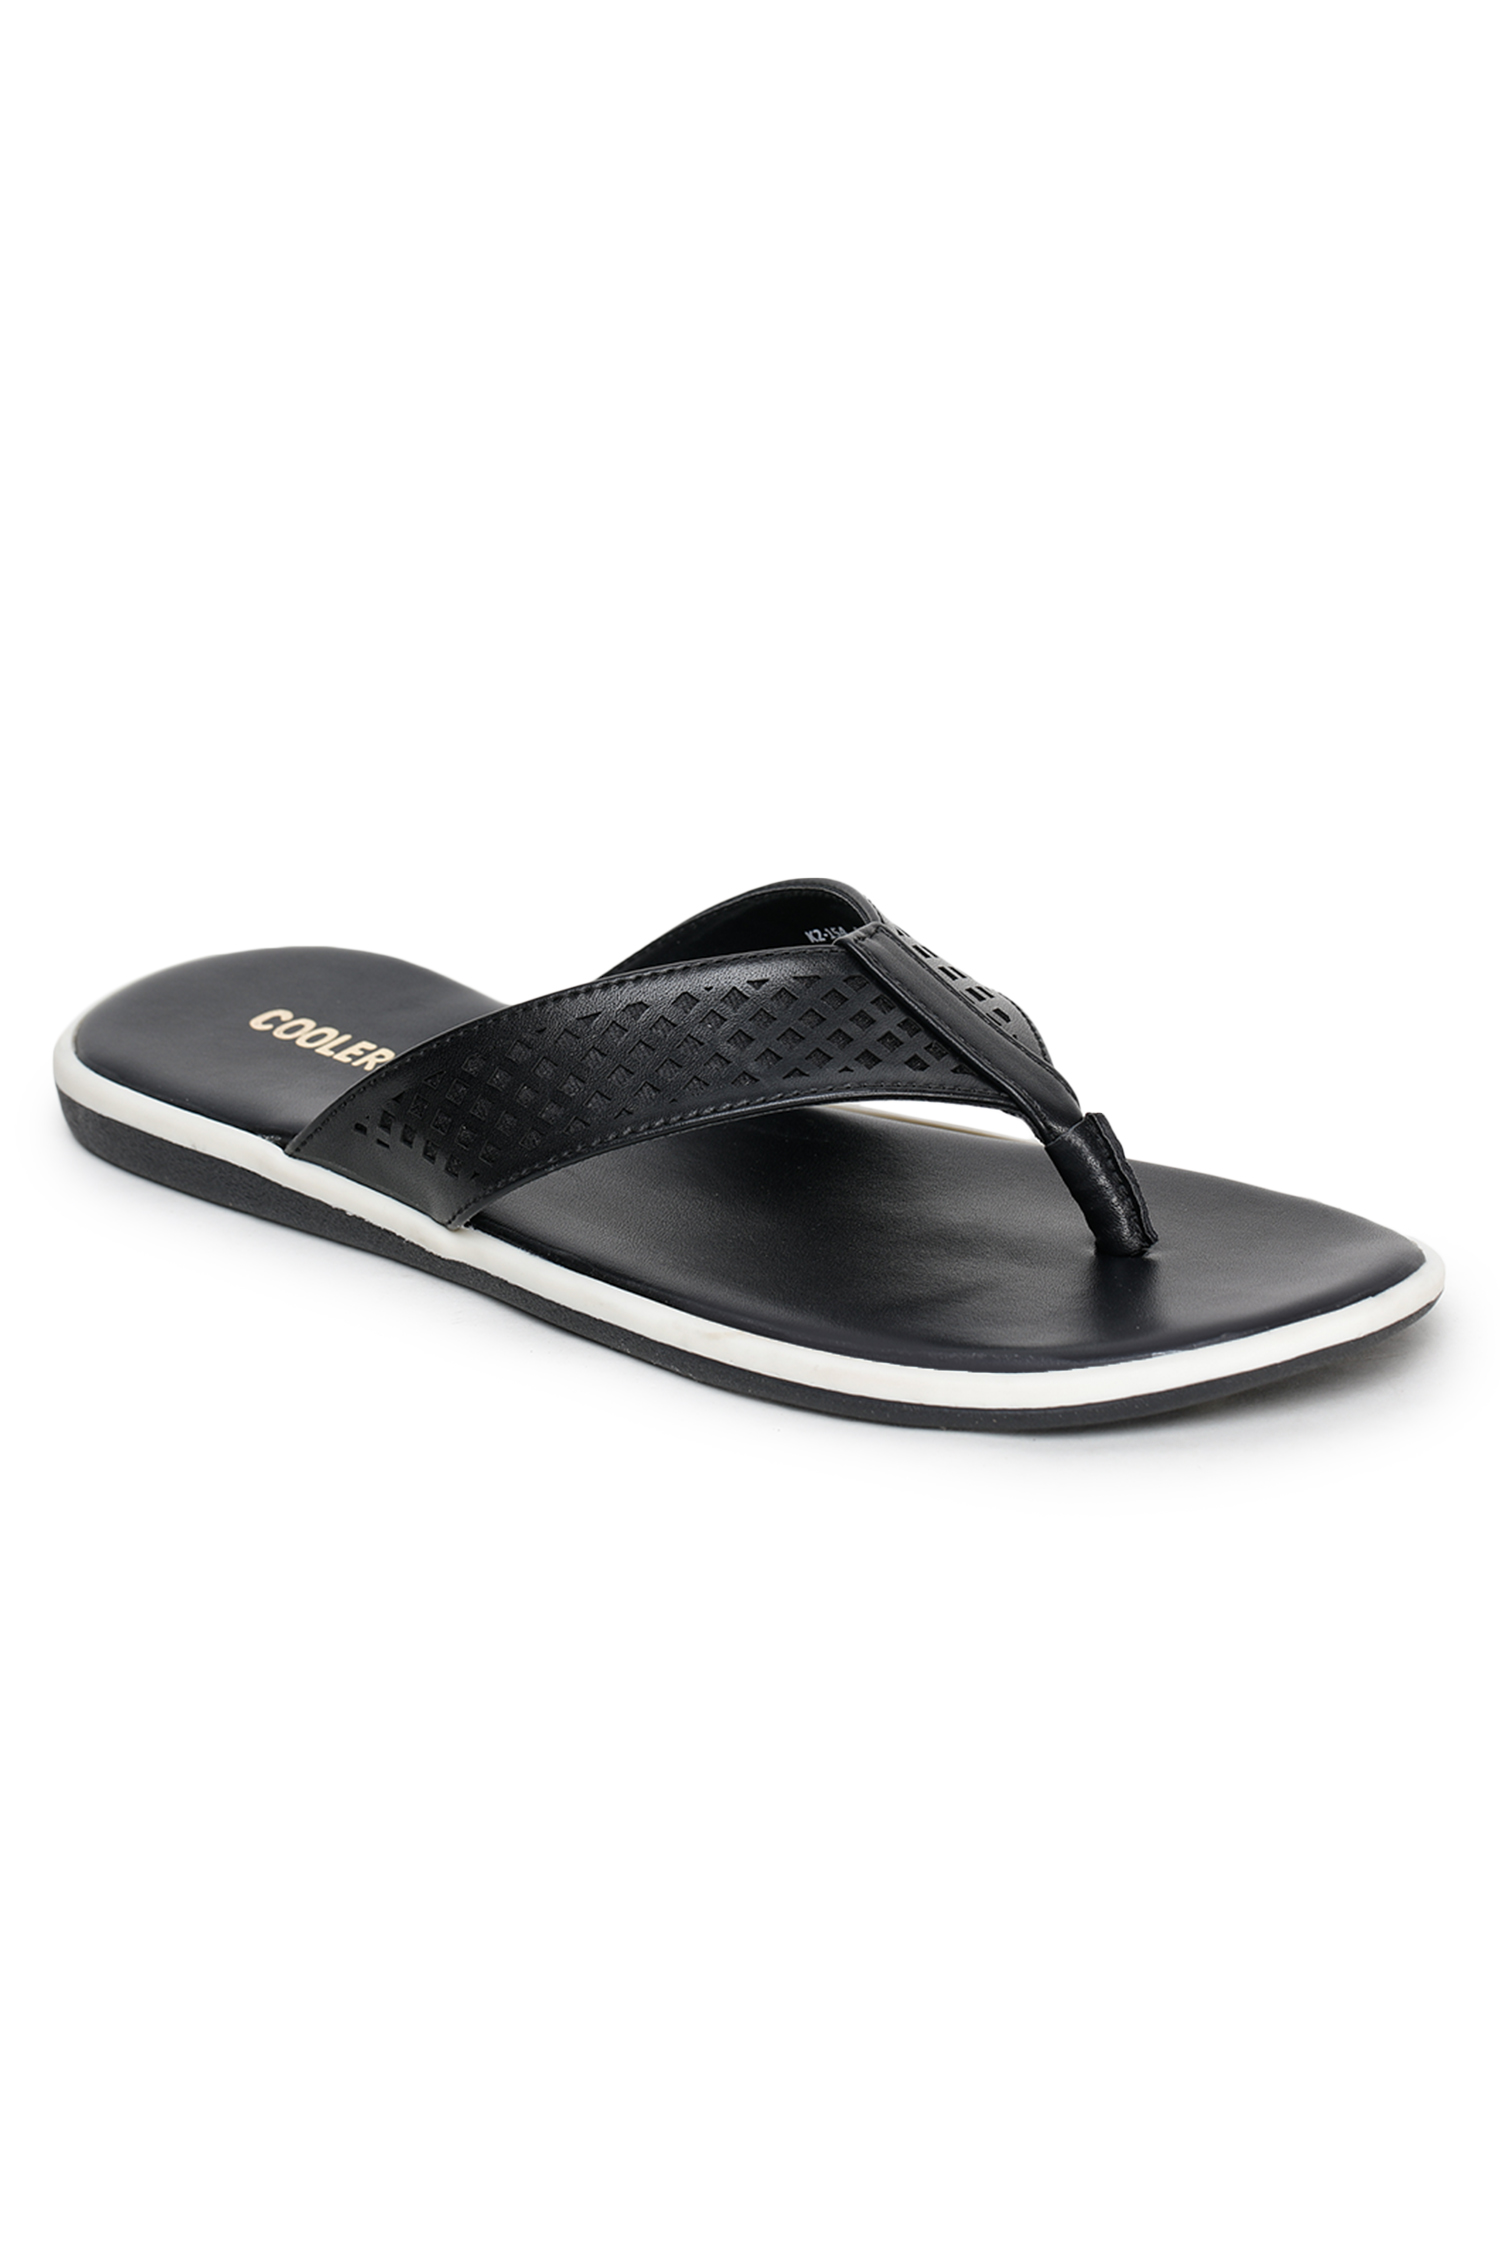 Liberty | Liberty COOLERS Slippers K2-154_BLACK For - Men